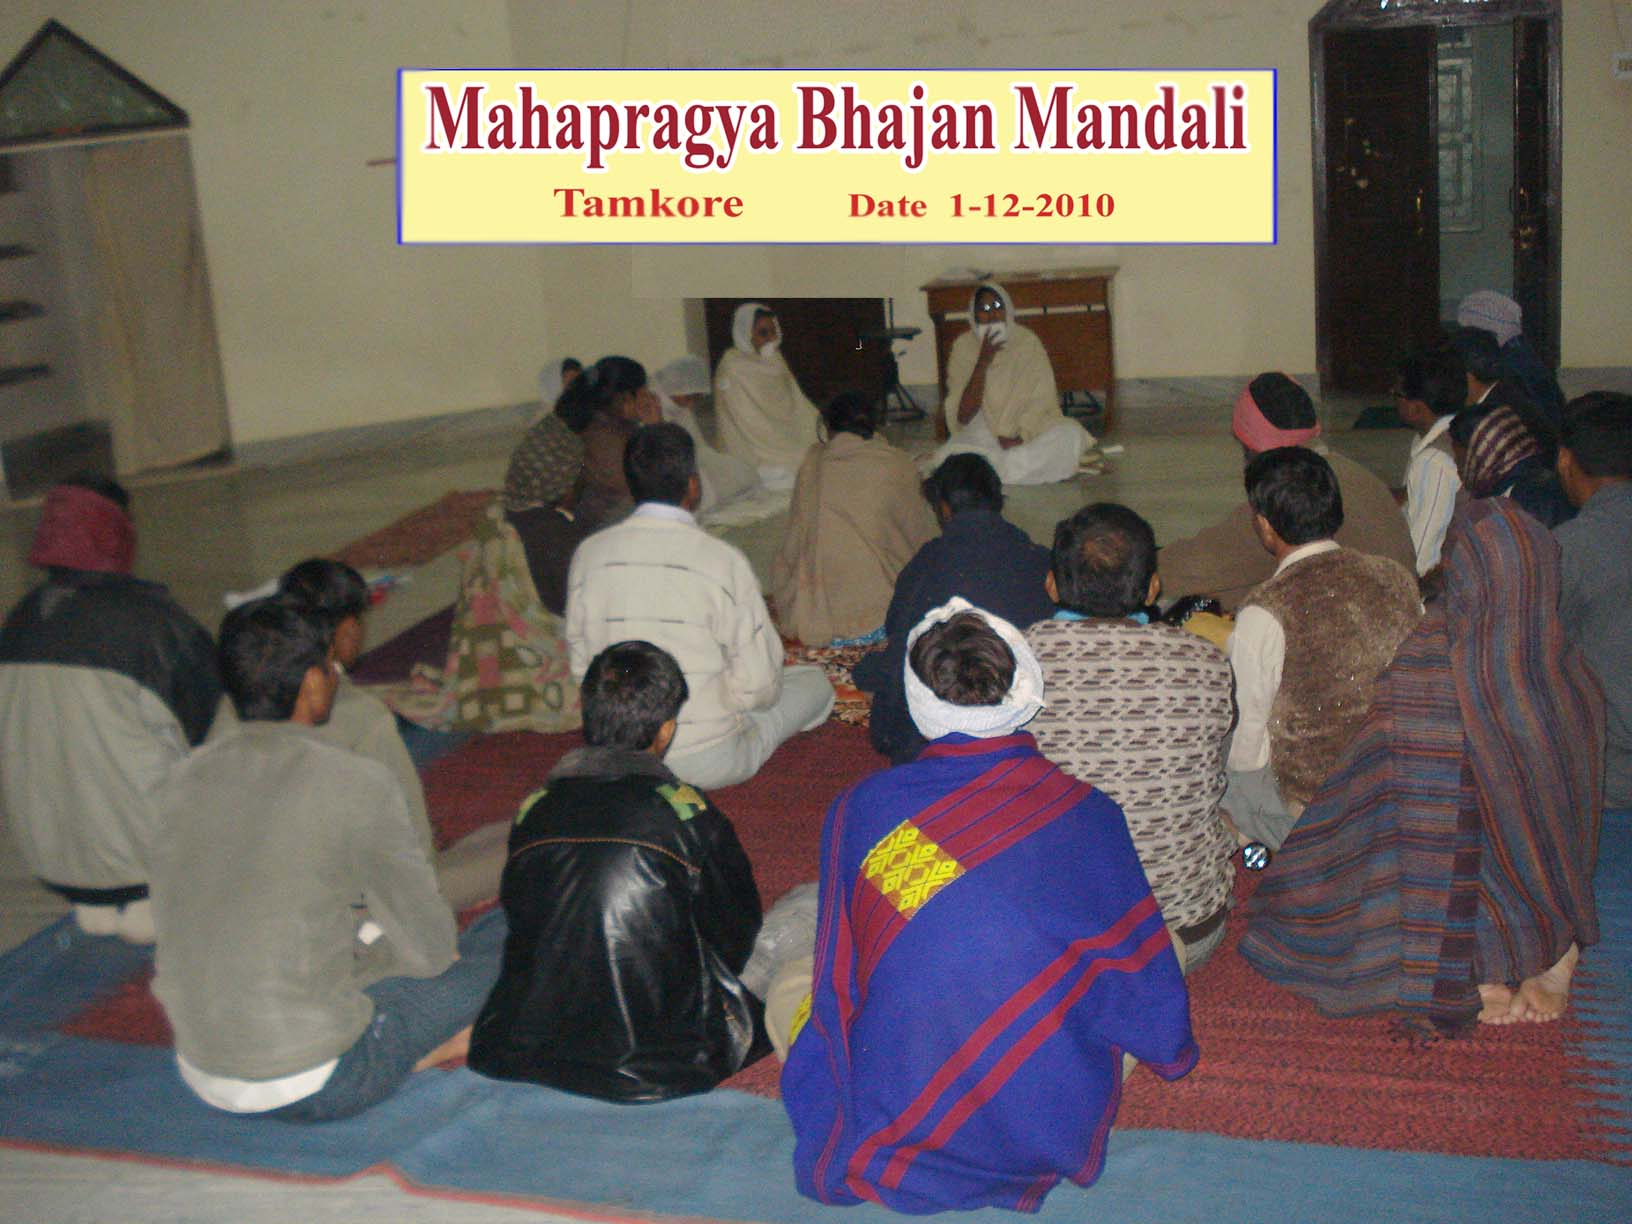 http://www.herenow4u.net/fileadmin/v3media/pics/organisations/Mahapragya_International_School/Mahapragya_Bhajan_Mandli.jpg